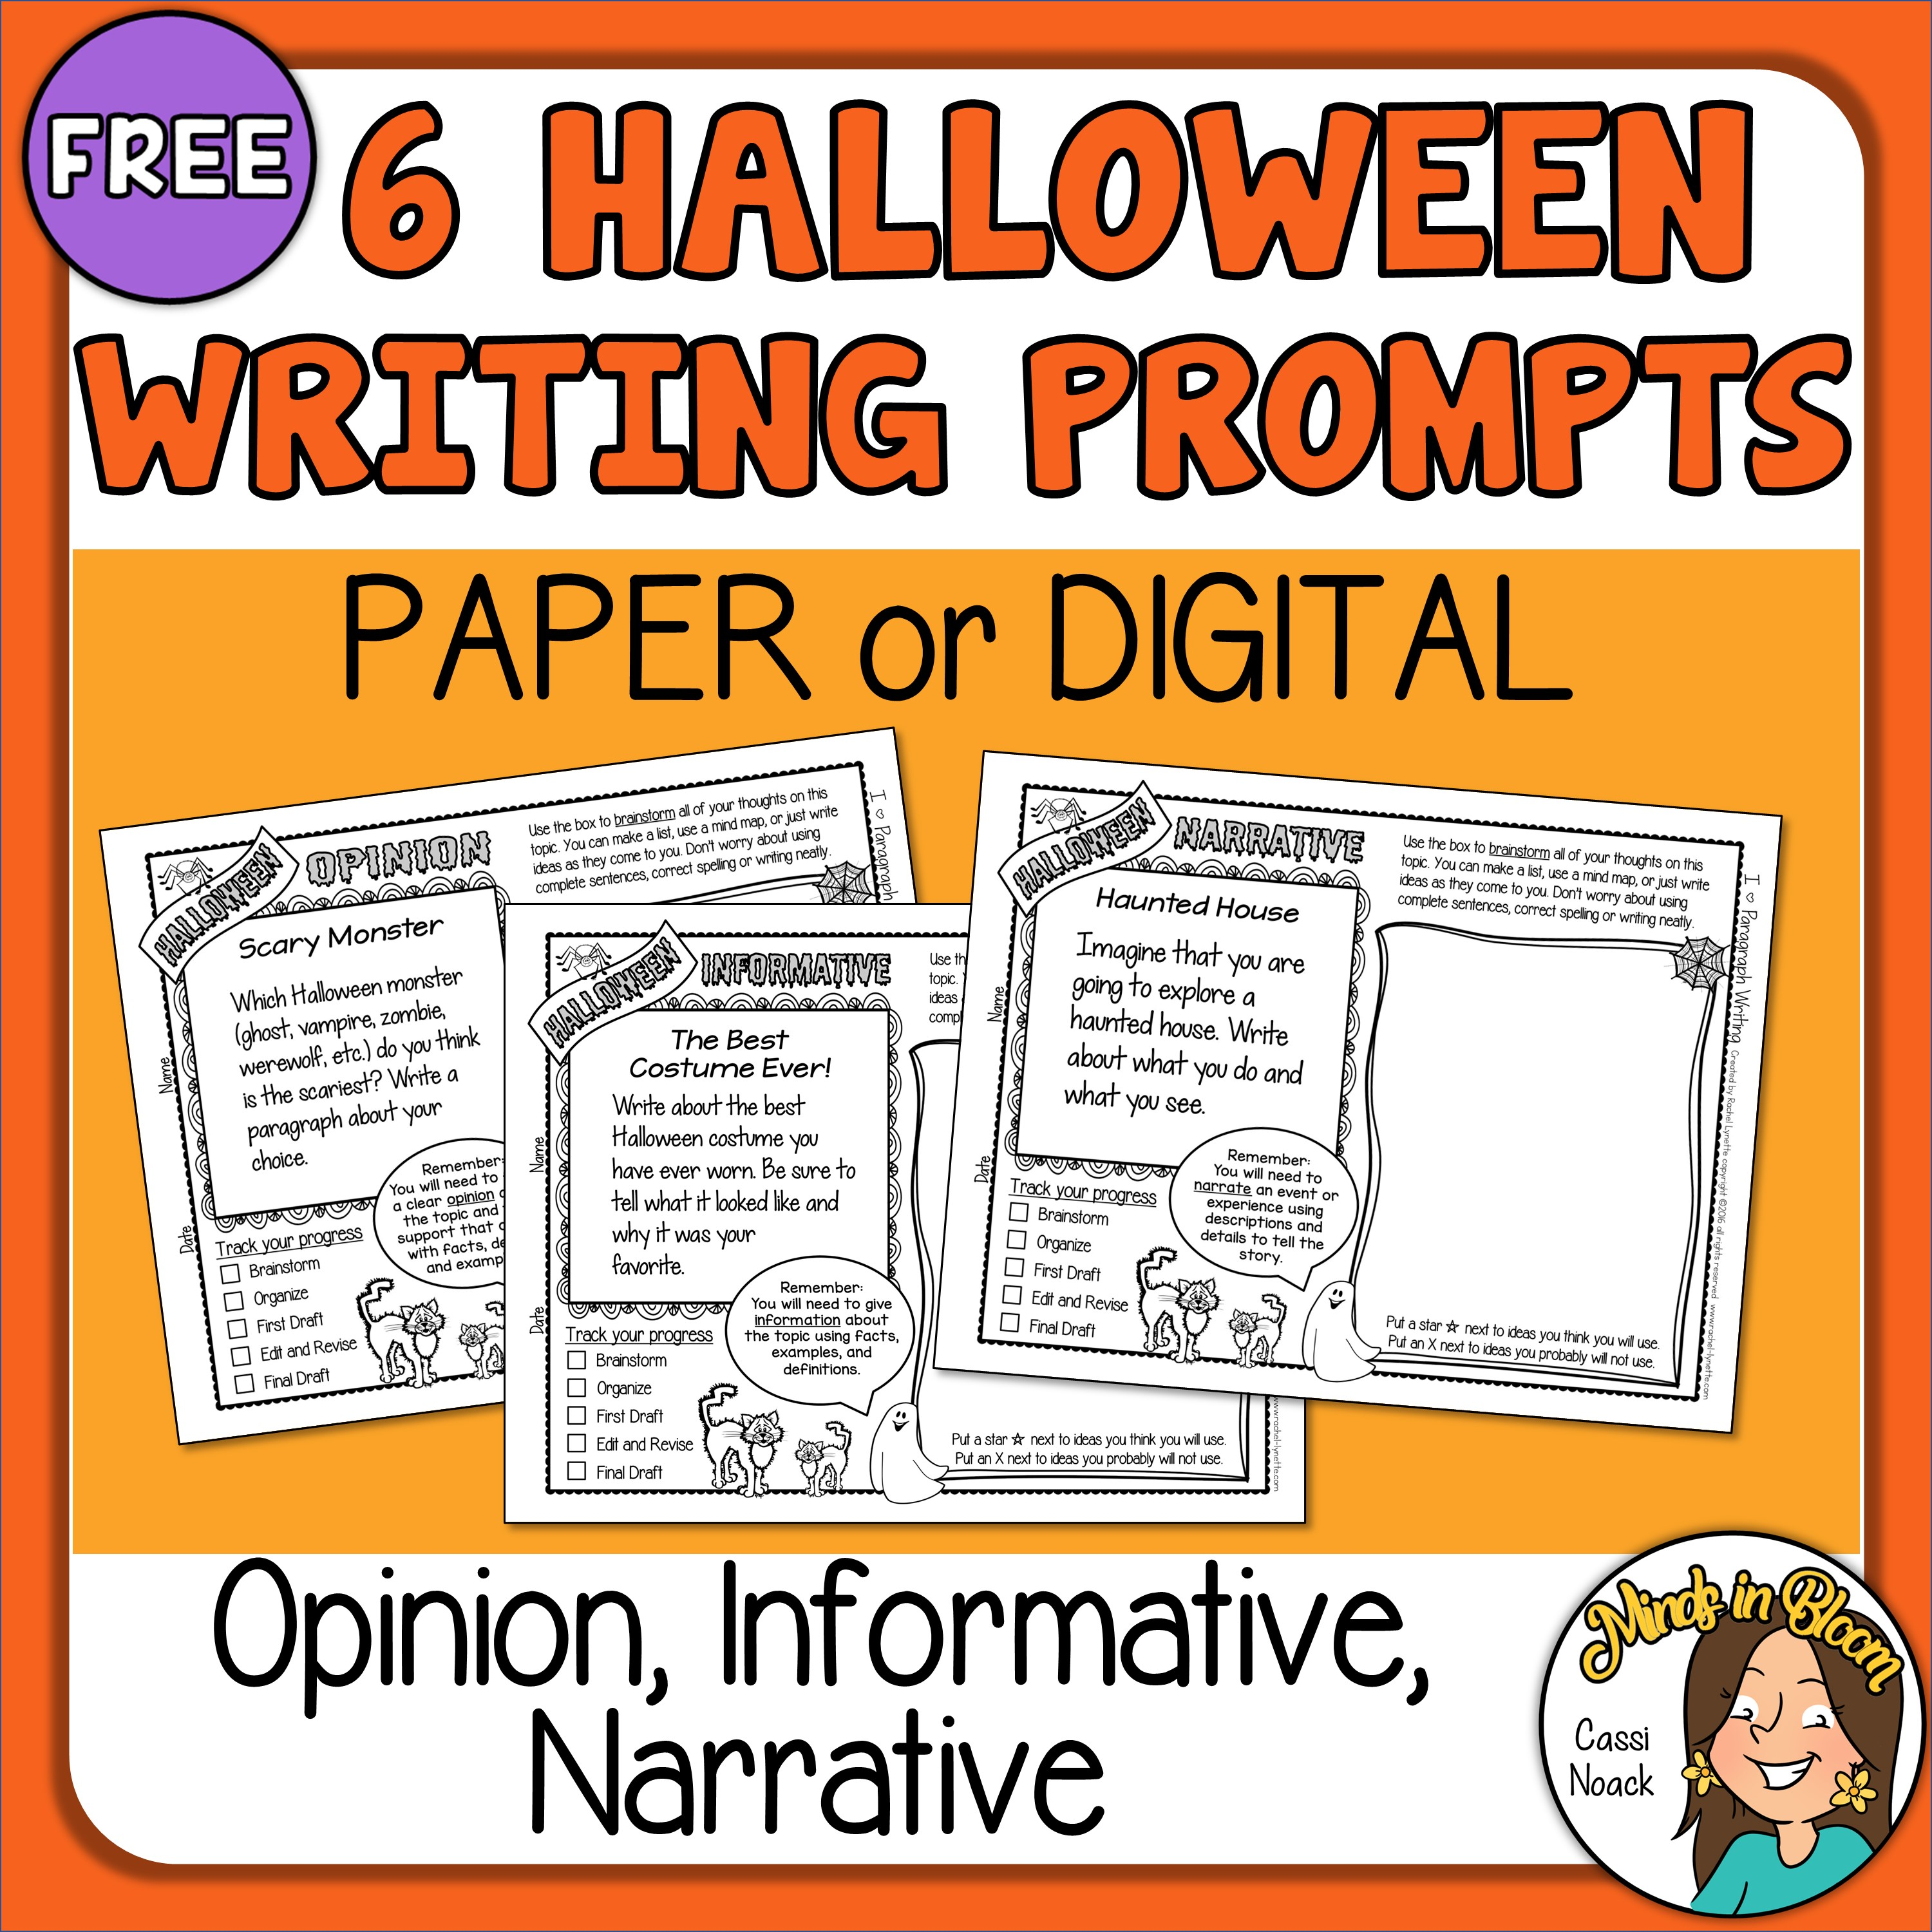 Halloween Writing Prompts - FREE! Image